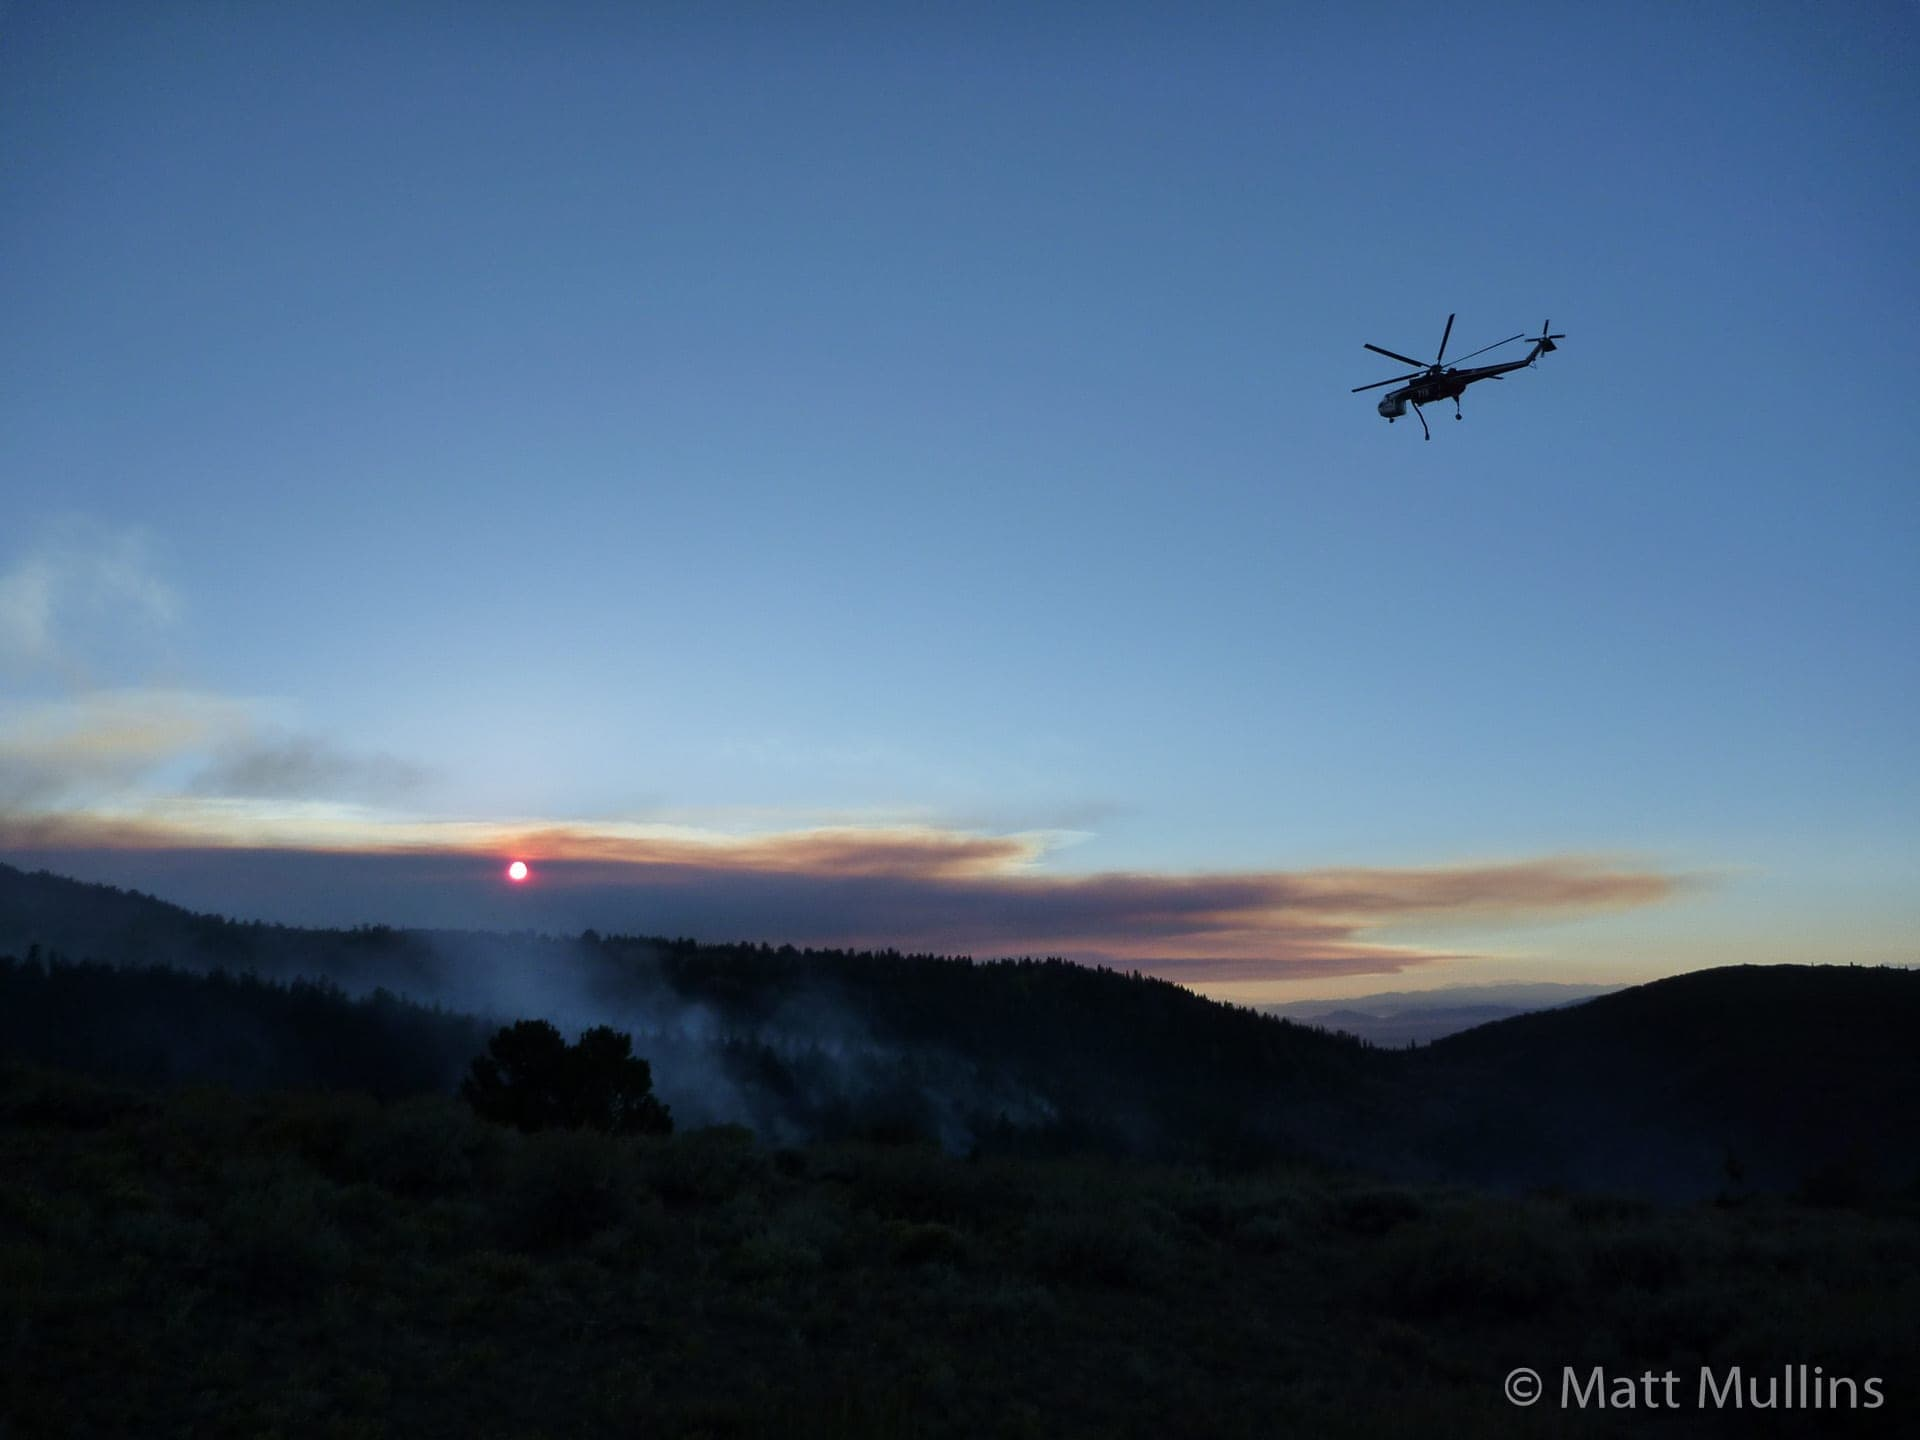 Nightfall over the Twitchell Fire